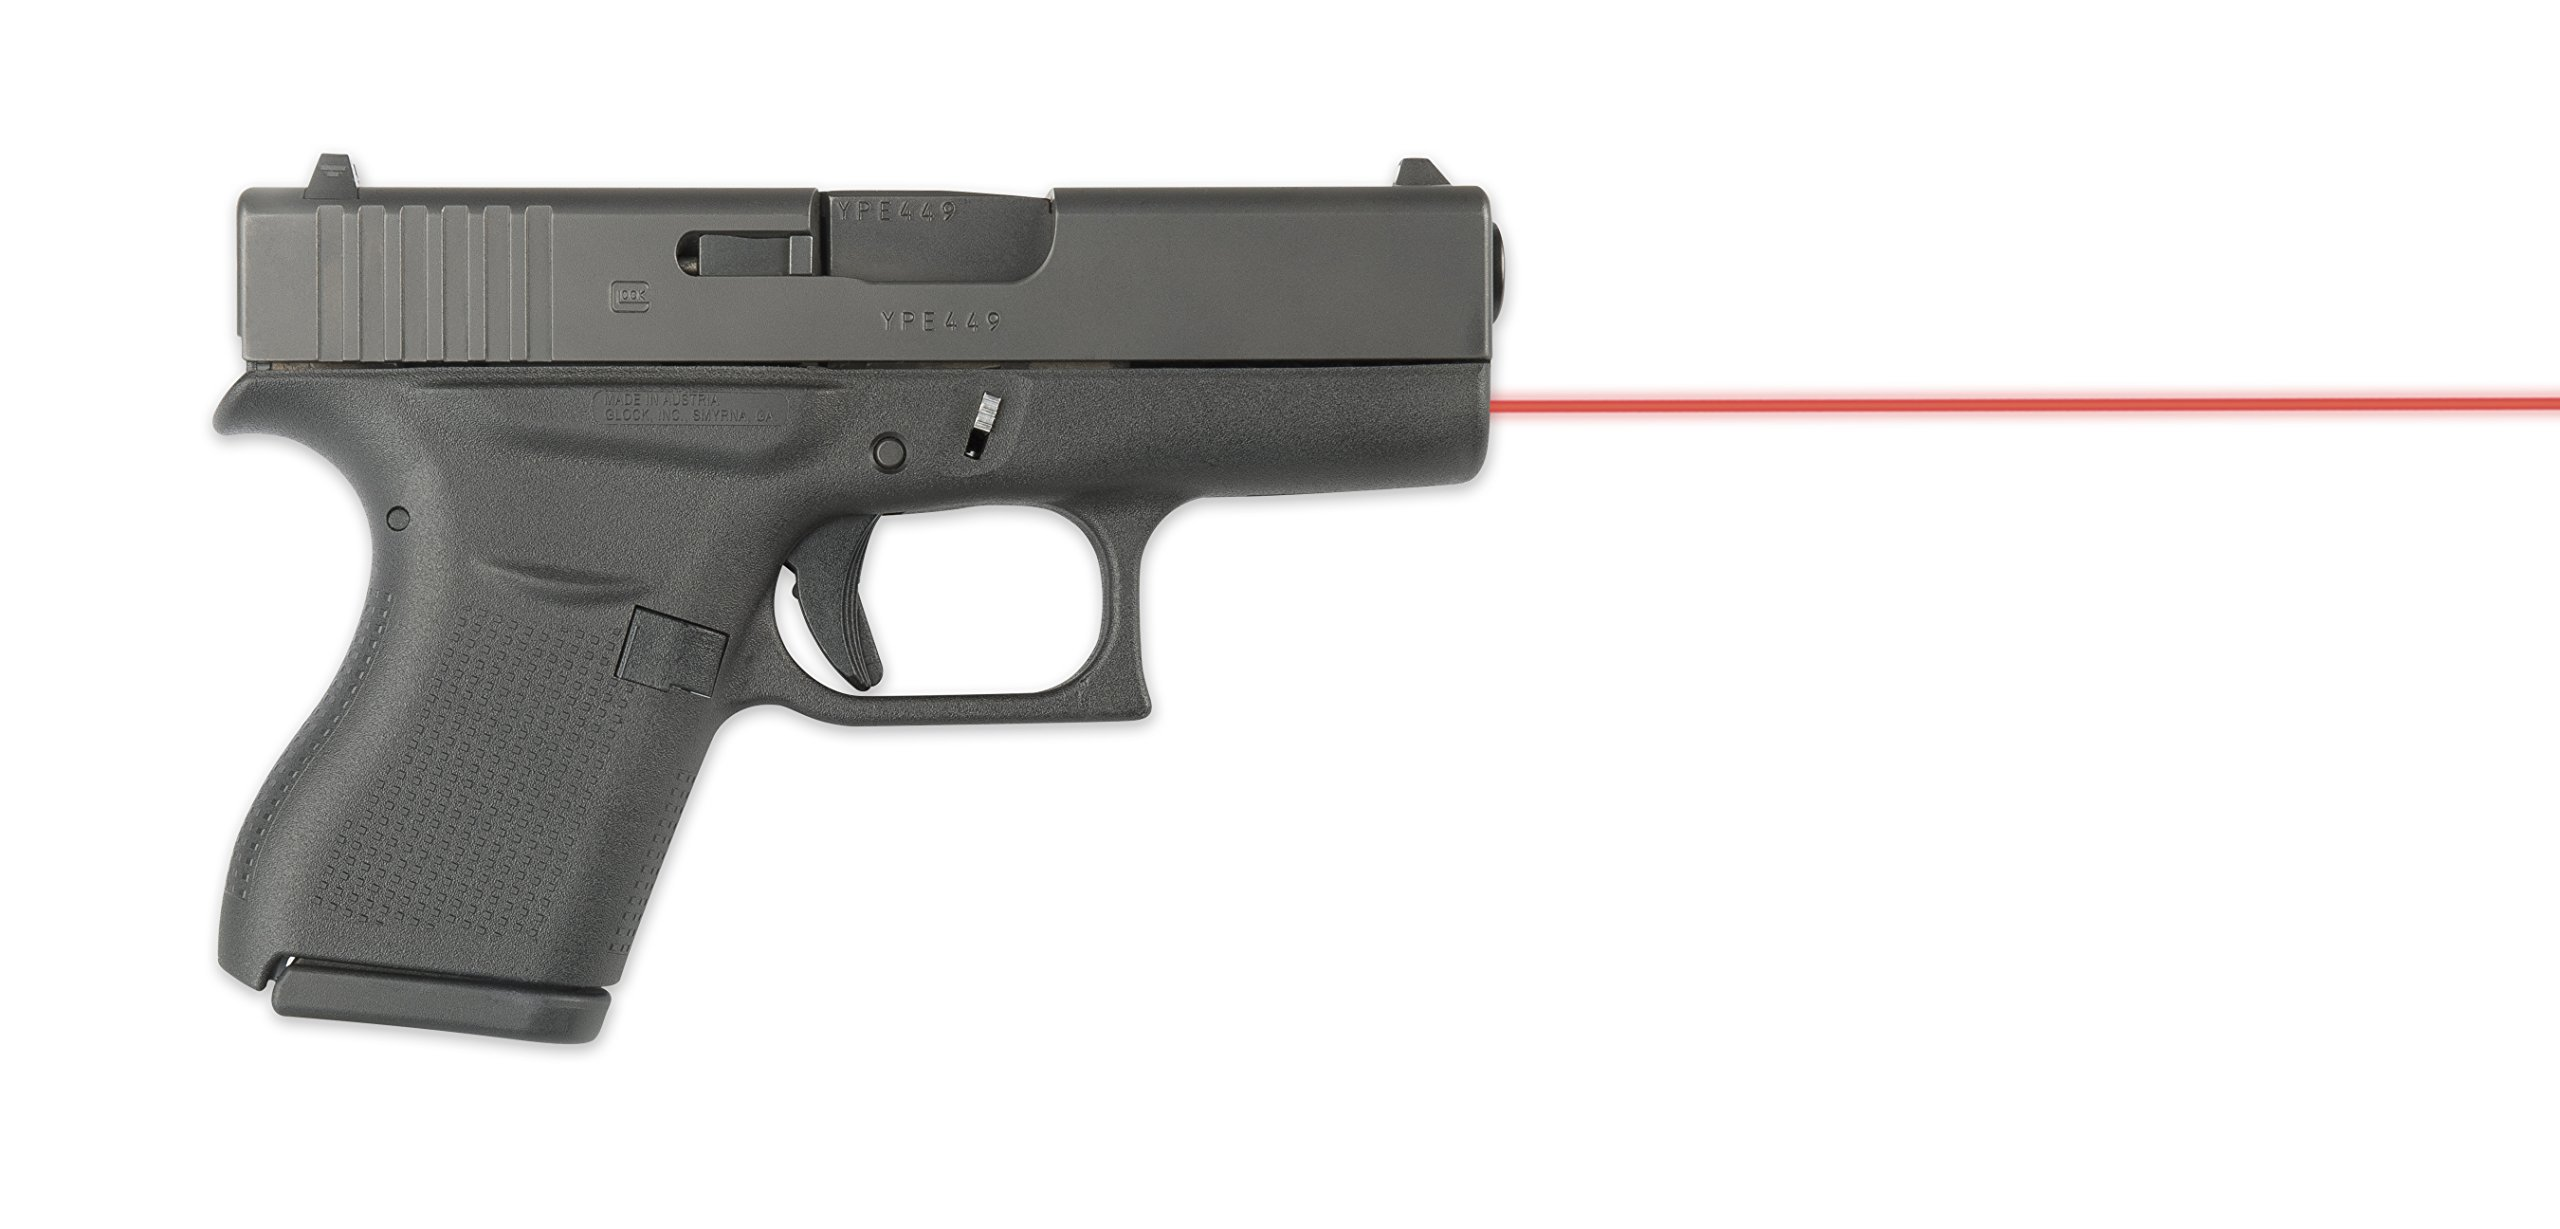 Guide Rod Laser (Red) For Glock 43 by LaserMax (Image #4)